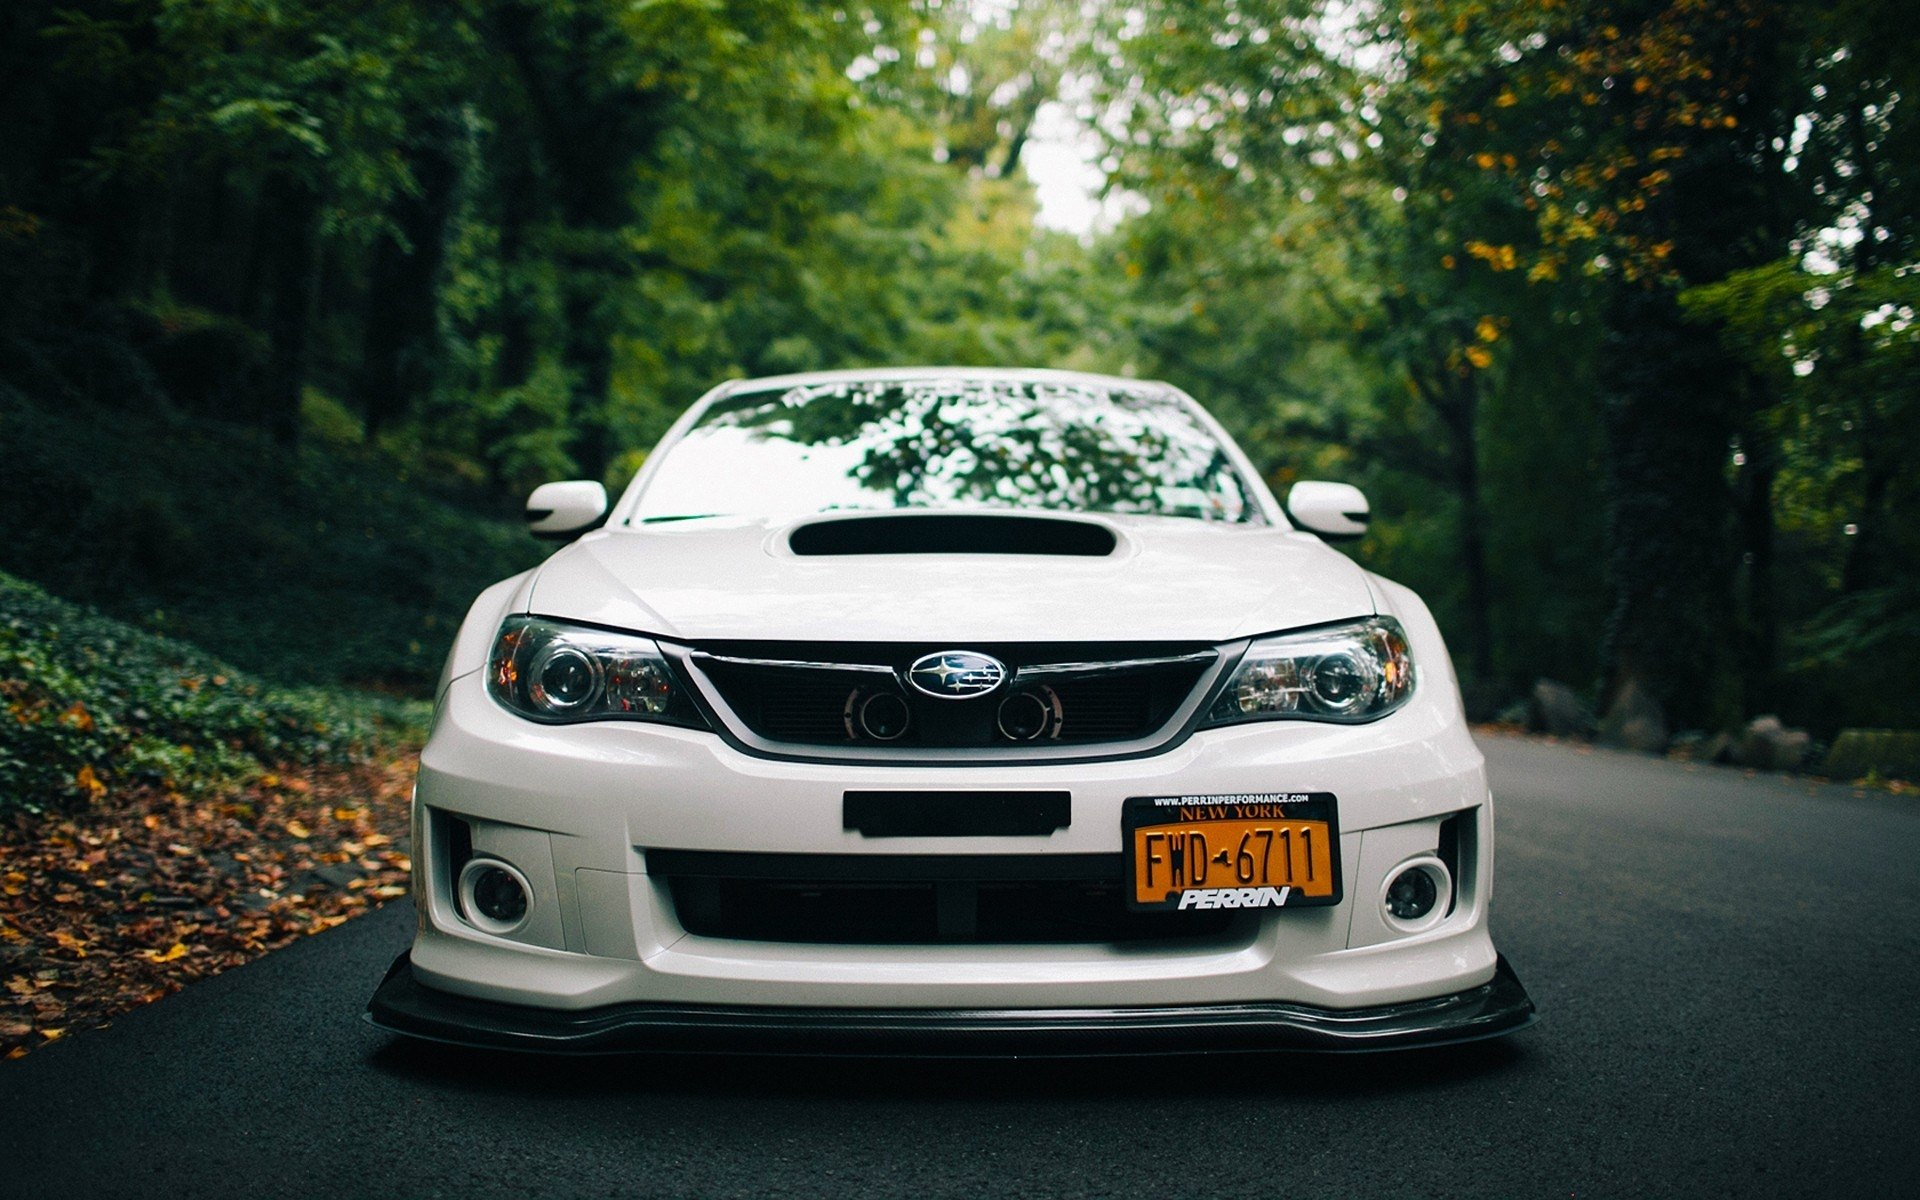 122 Subaru Impreza Hd Wallpapers Background Images Wallpaper Abyss